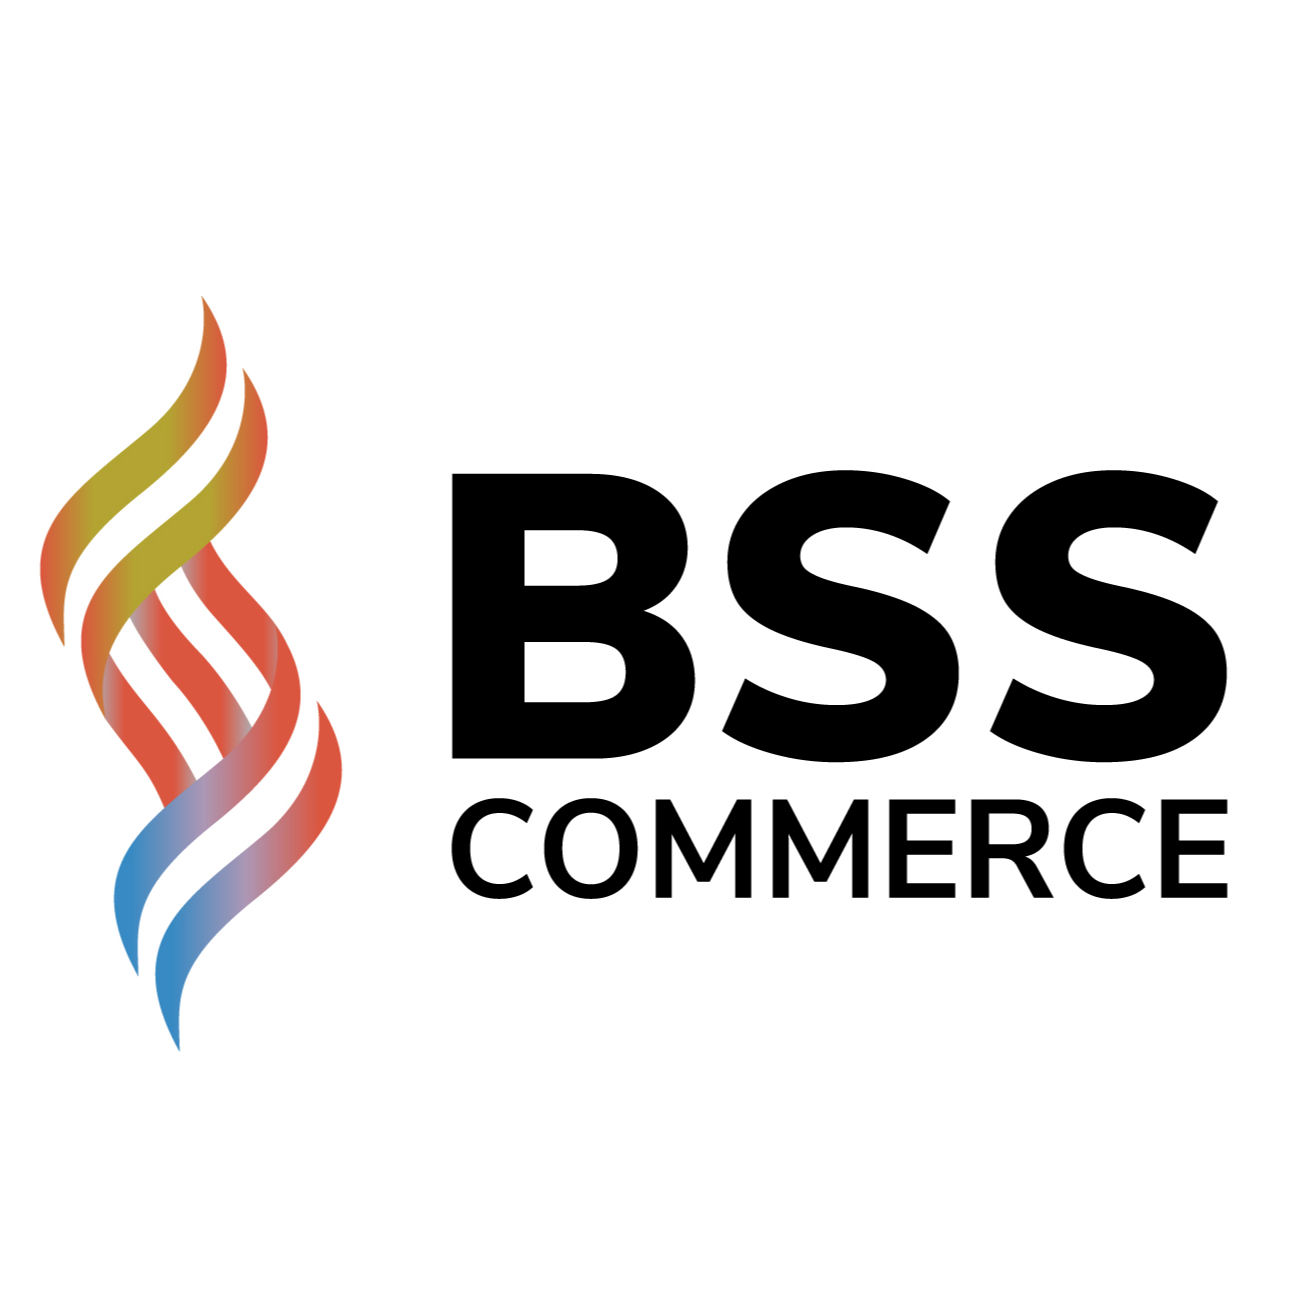 BSS Commerce